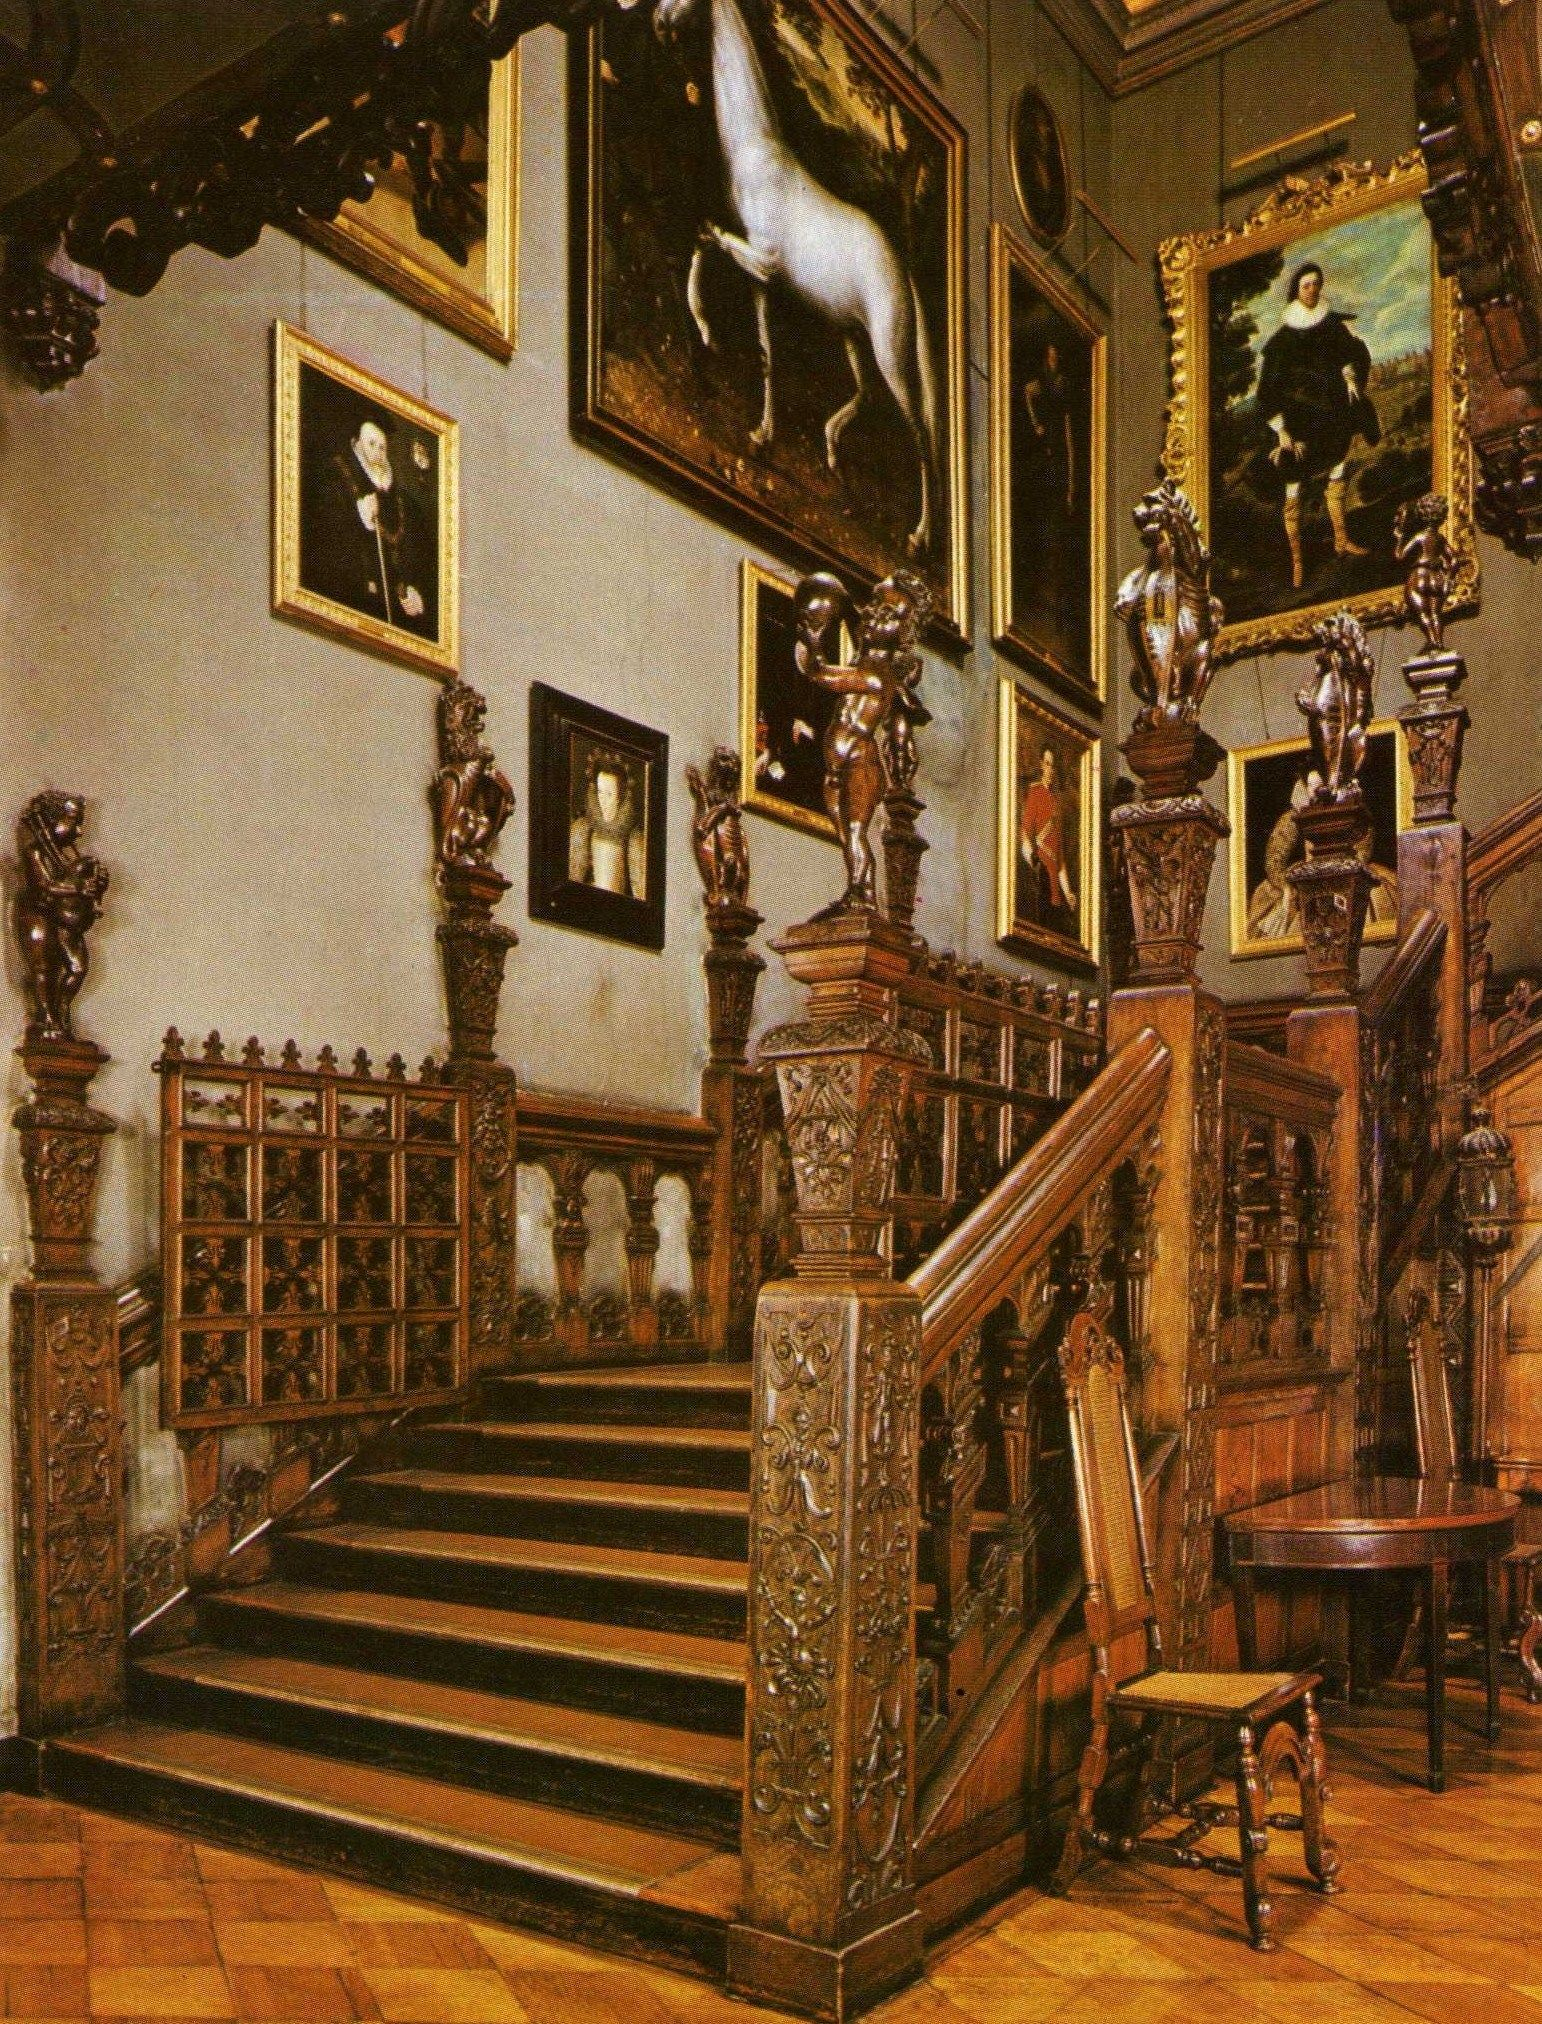 The main staircase hatfield house hertfordshire england childhood home of elizabeth  also rh in pinterest